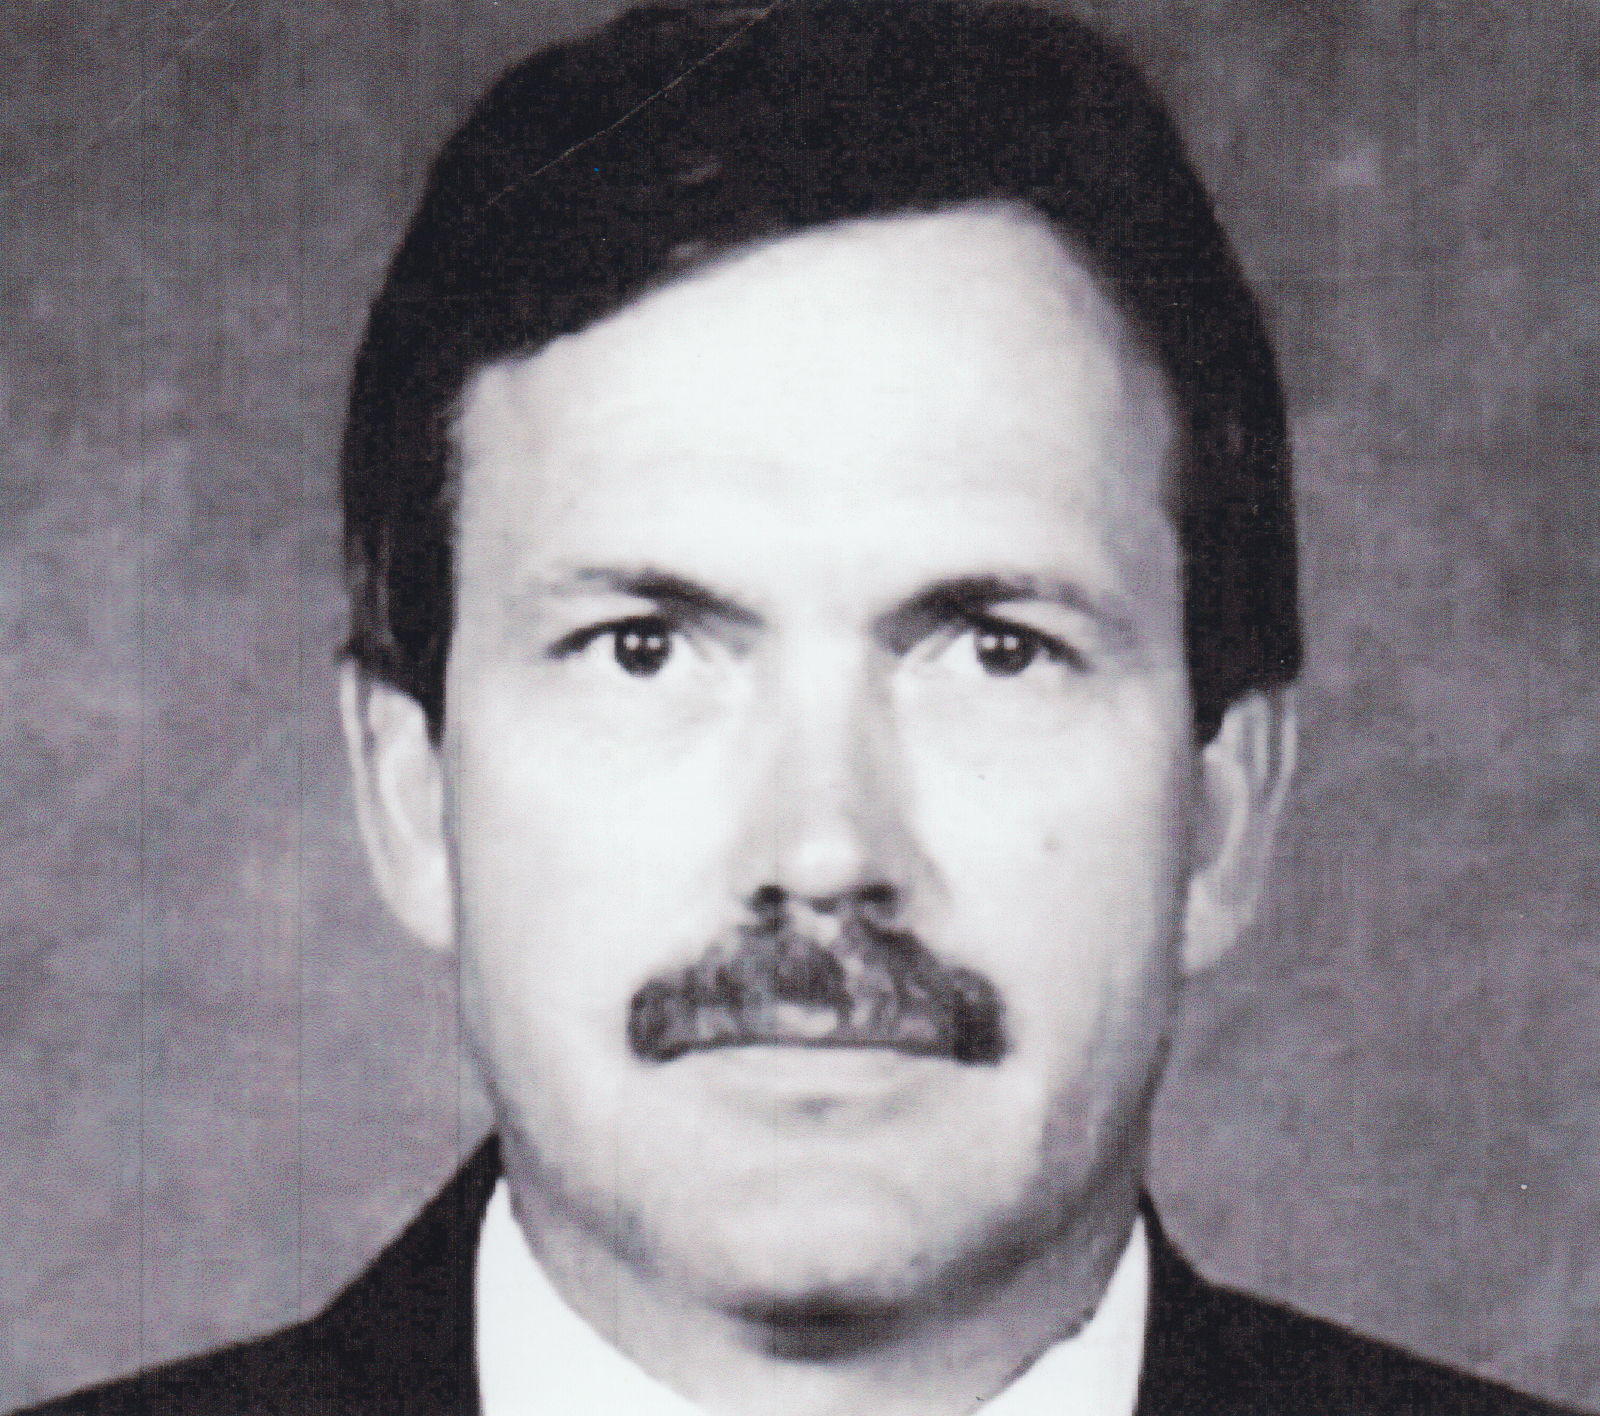 Special Agent Steven W. Harton | Denver and Rio Grande Western Railroad Police Department, Railroad Police